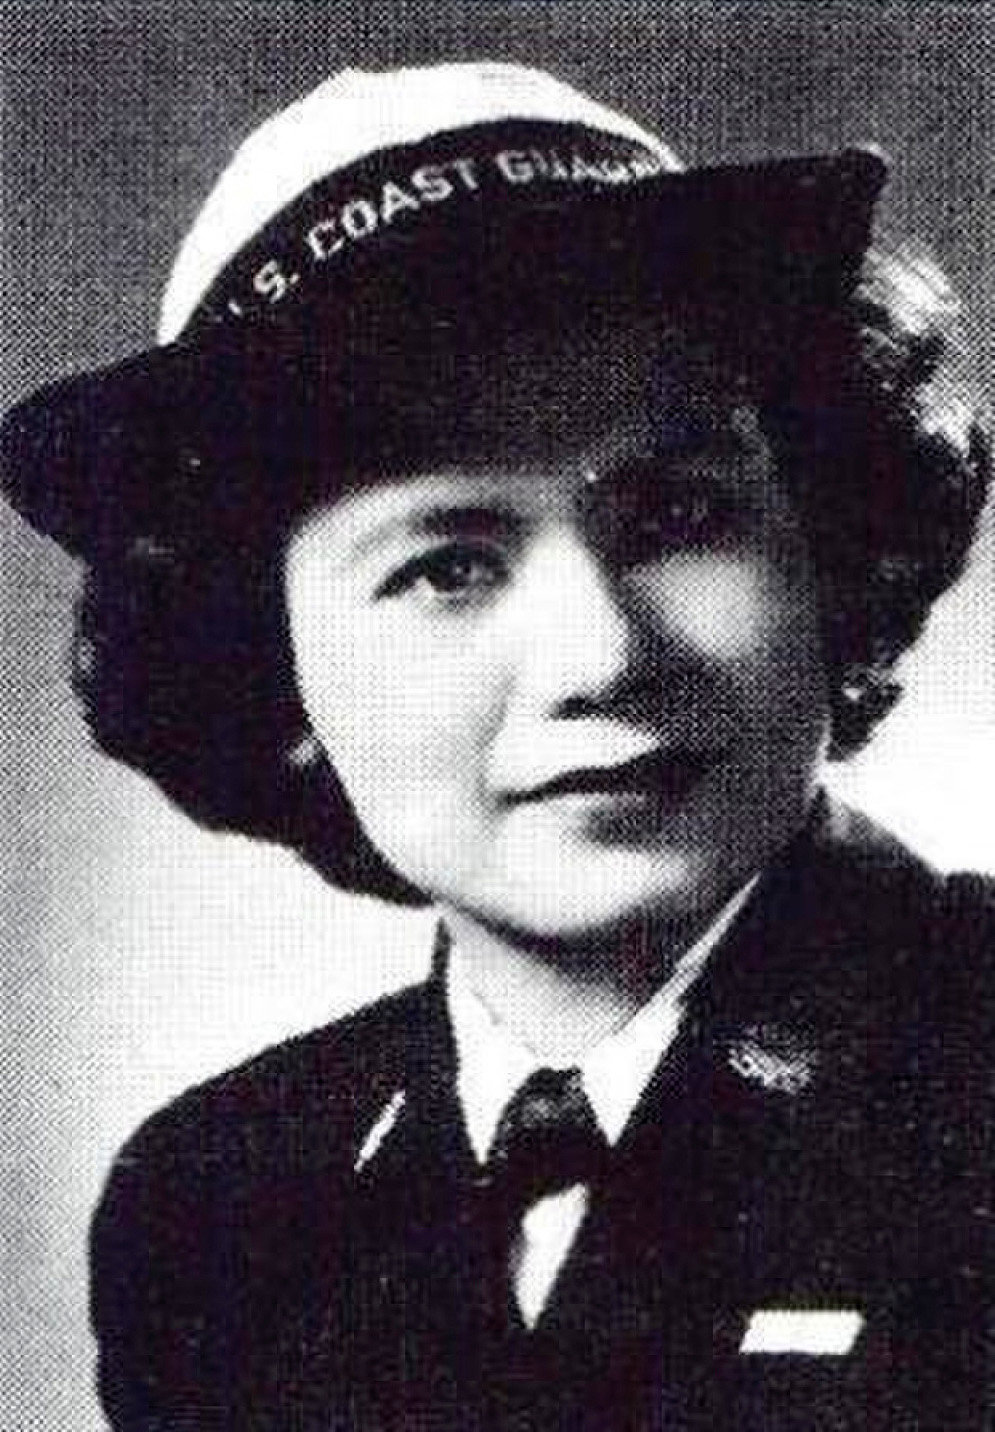 Florence Finch